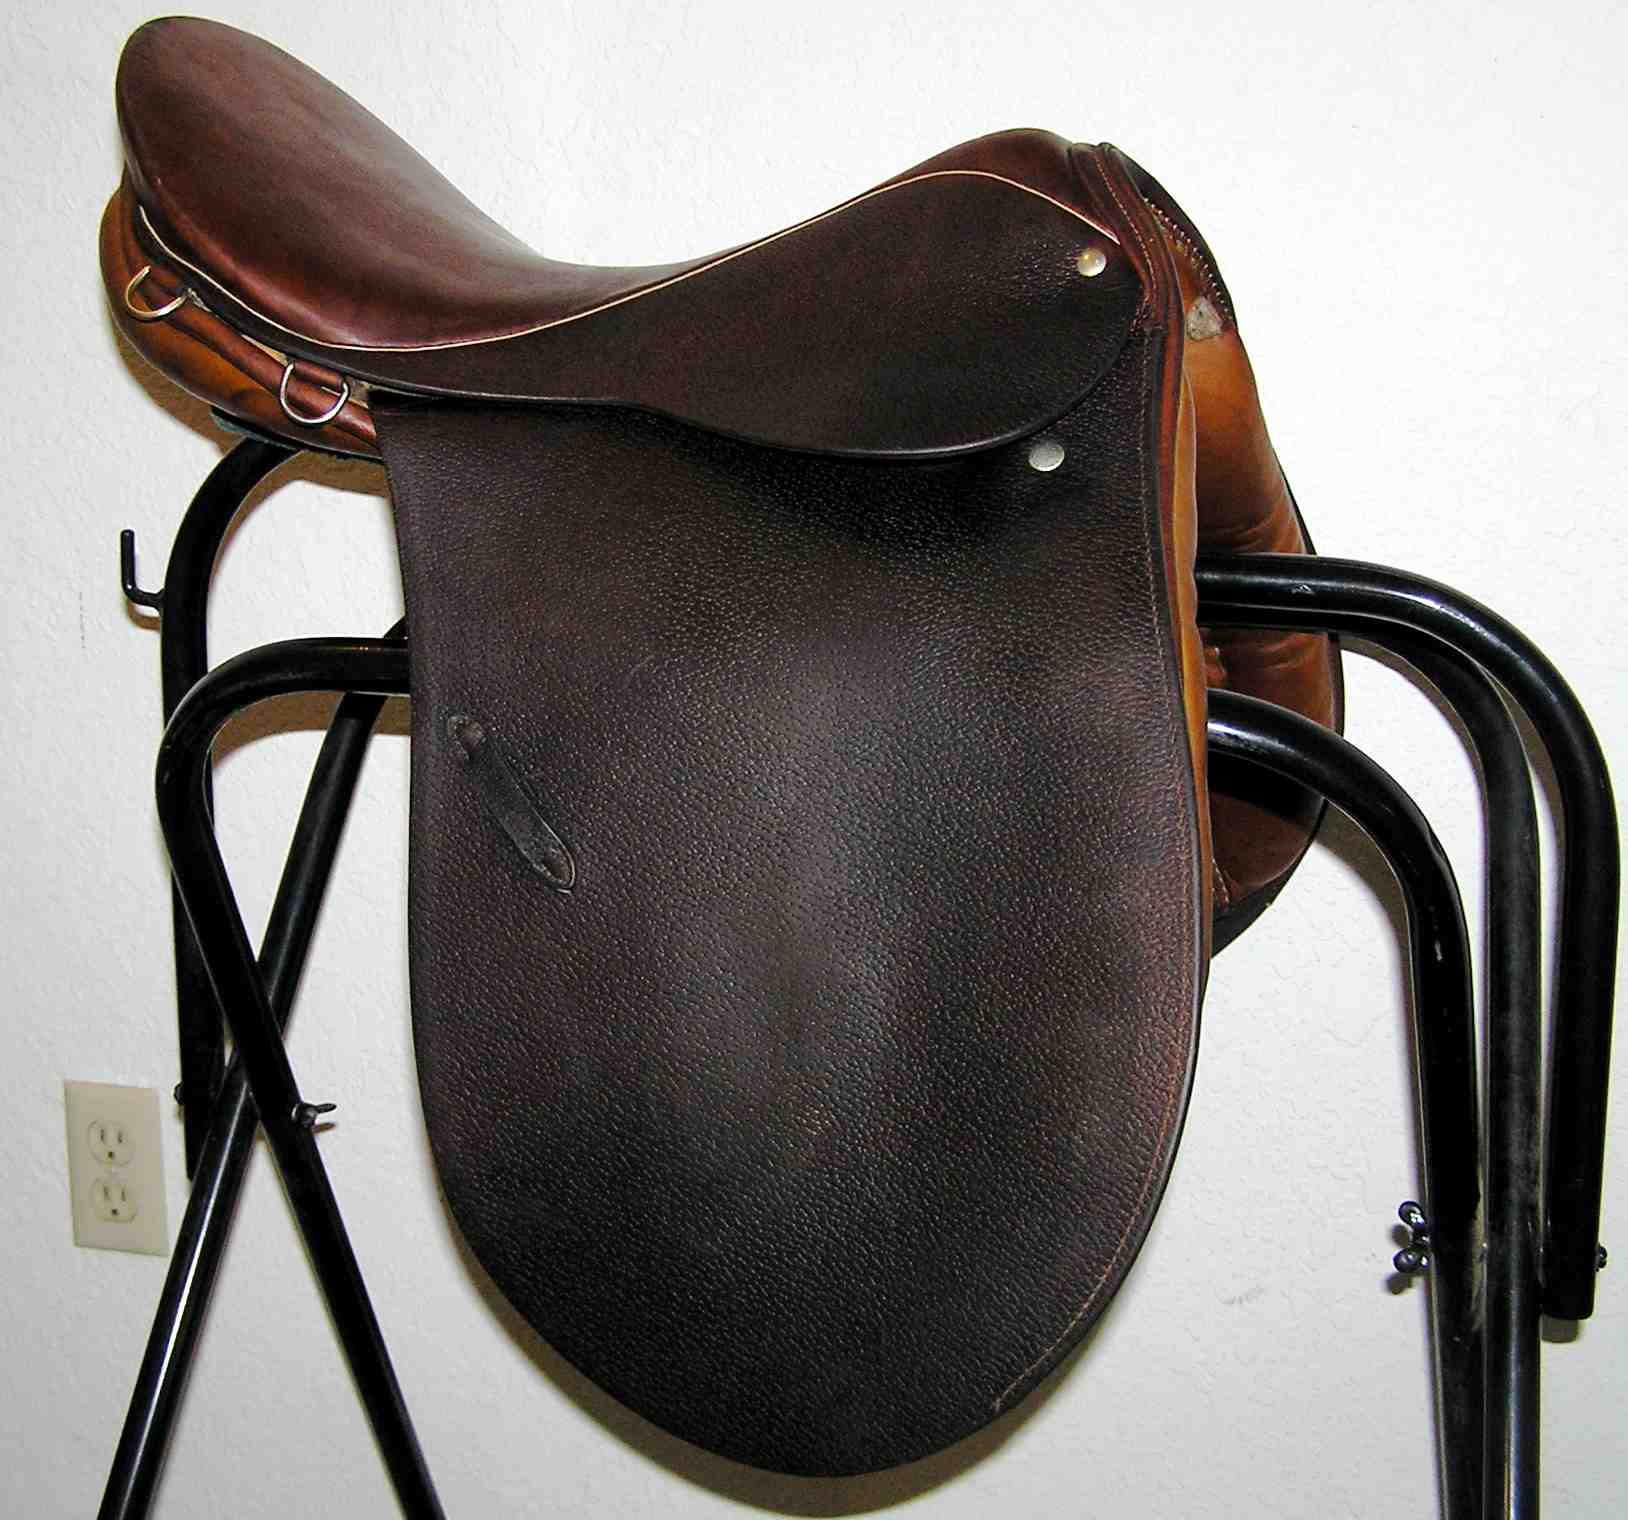 da89c6fd178f Saddle - Wikipedia